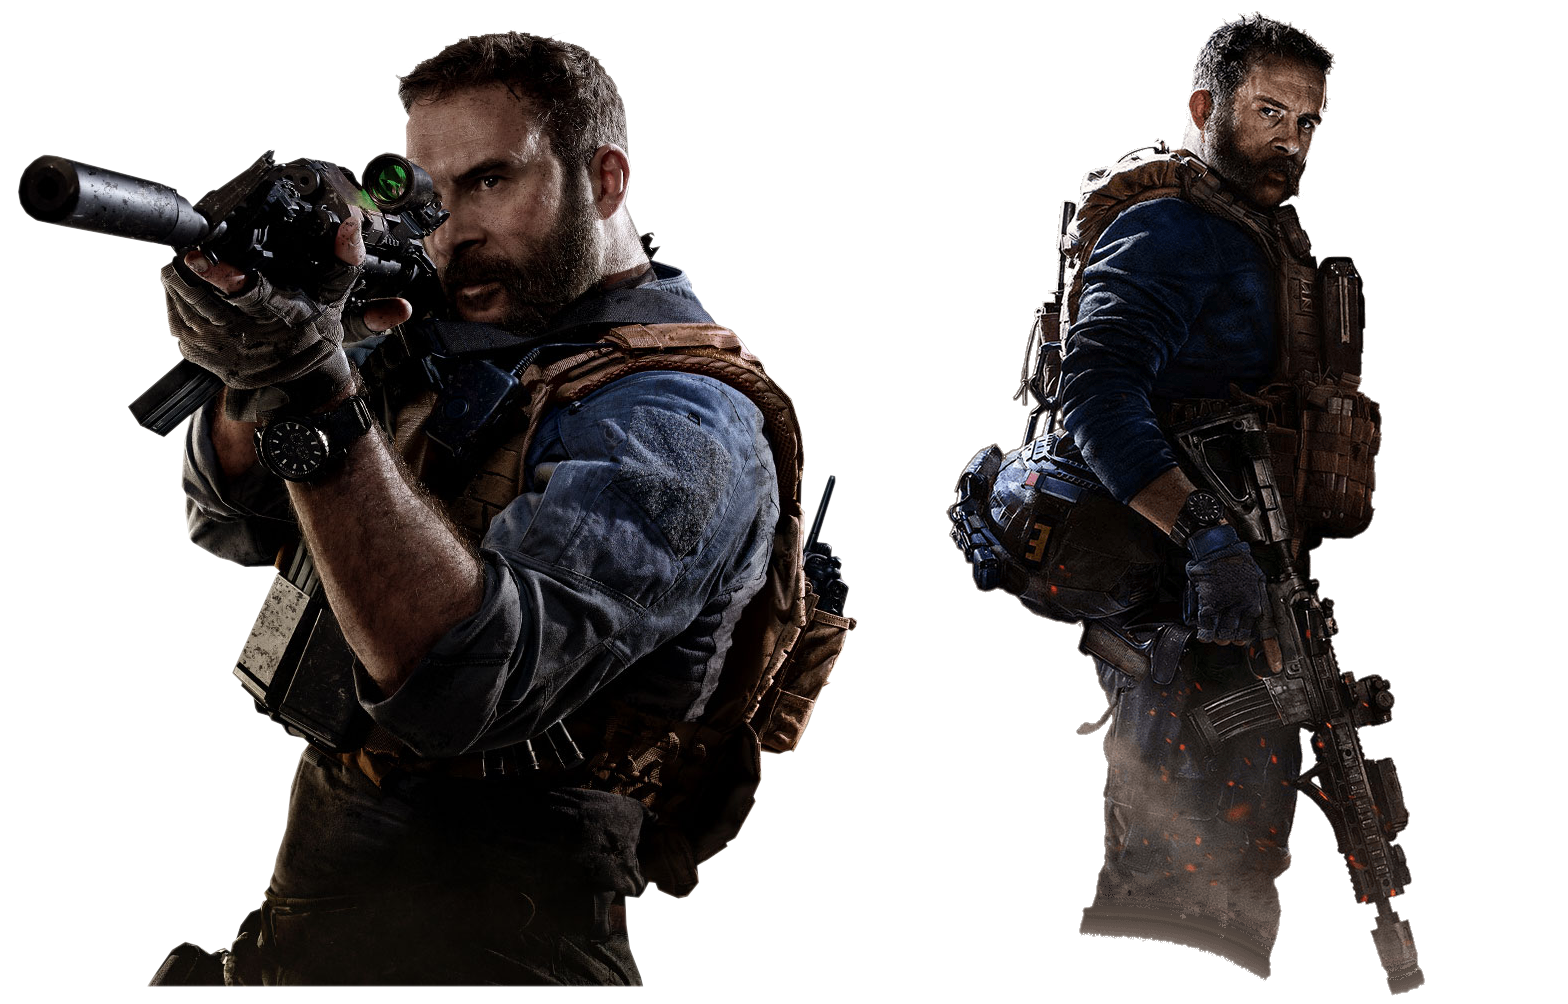 Call Of Duty Modern Warfare Capt Price Renders By Crussong On